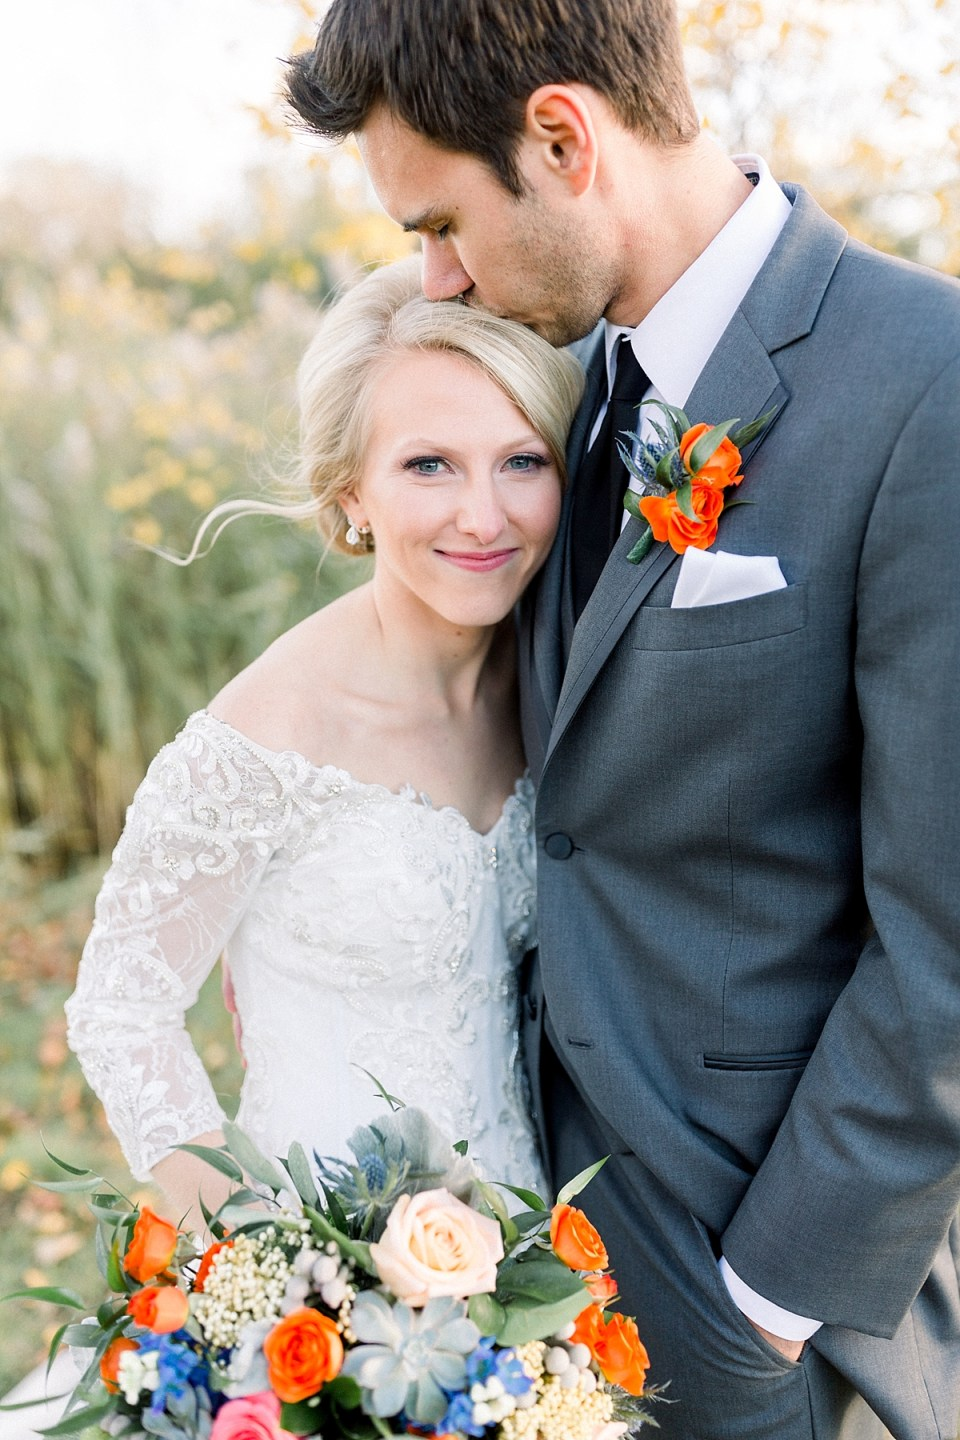 Arielle Peters Photography | Groom kissing the bride's head outside in field on fall wedding day.